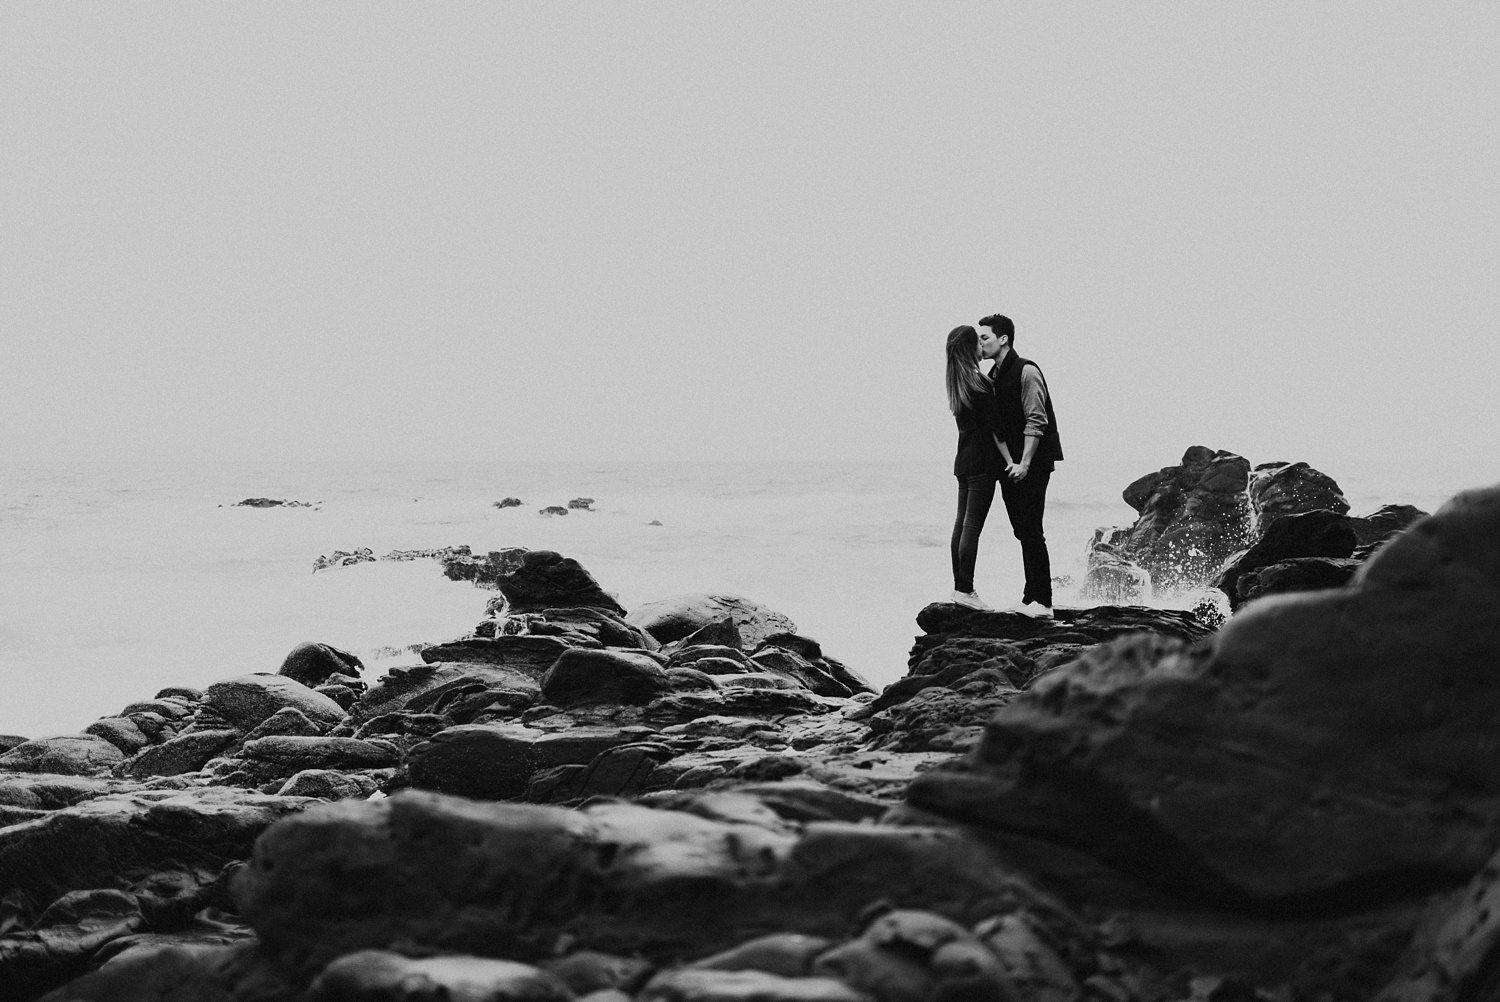 Nate-shepard-photography-engagment-california-wedding-photographer-denver-laguna-beach_0022.jpg